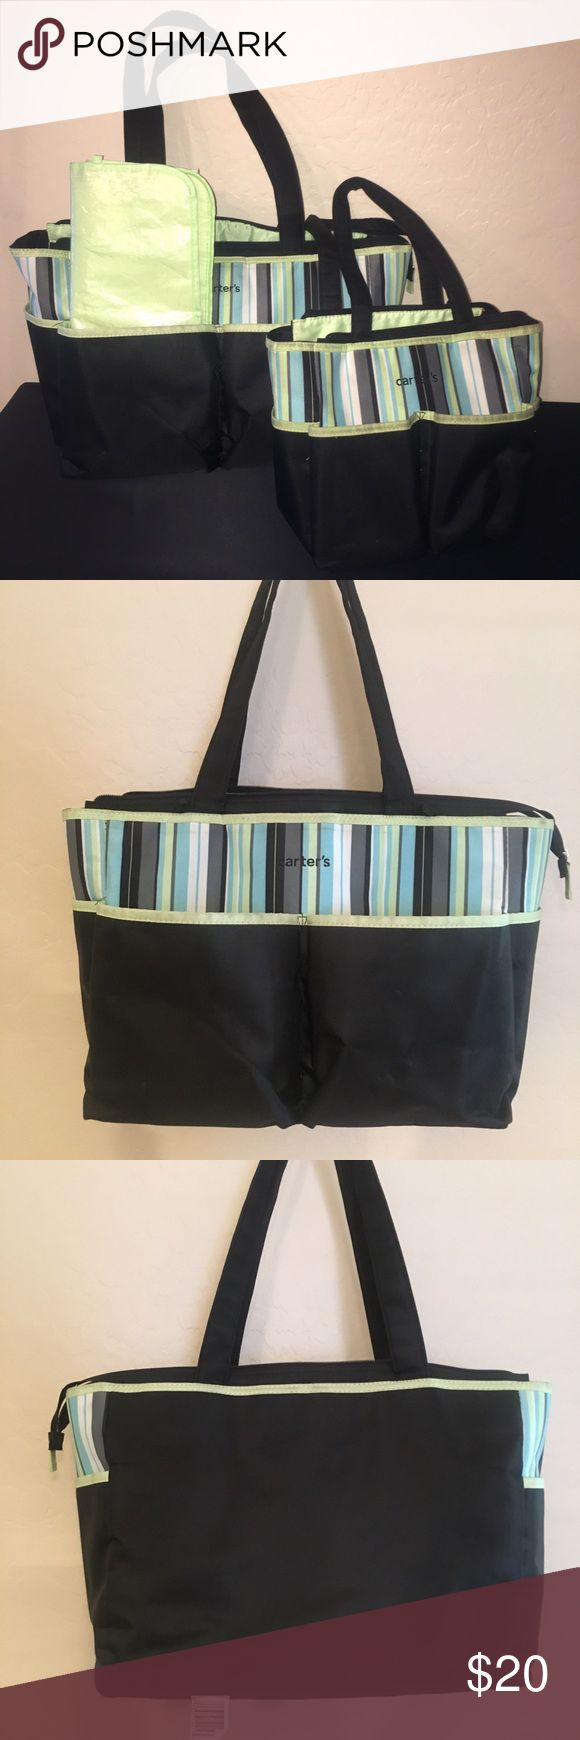 Carter's Diaper Bag Set Lime green, baby blue, white, grey, and black striped bag, with black bottom and lime green interior. 2 pockets in front and side. Changing pad. Large bag has small clear bag insert. Some pen ink stains on interior sections of each bag. Bags are in really good condition. The large bag is like new. I used the small one a lot more than the larger one.  Large bag 19 x 11 x 6.75 inches Small bag 12 x 9 x 4.5 inches Carter's Bags Baby Bags